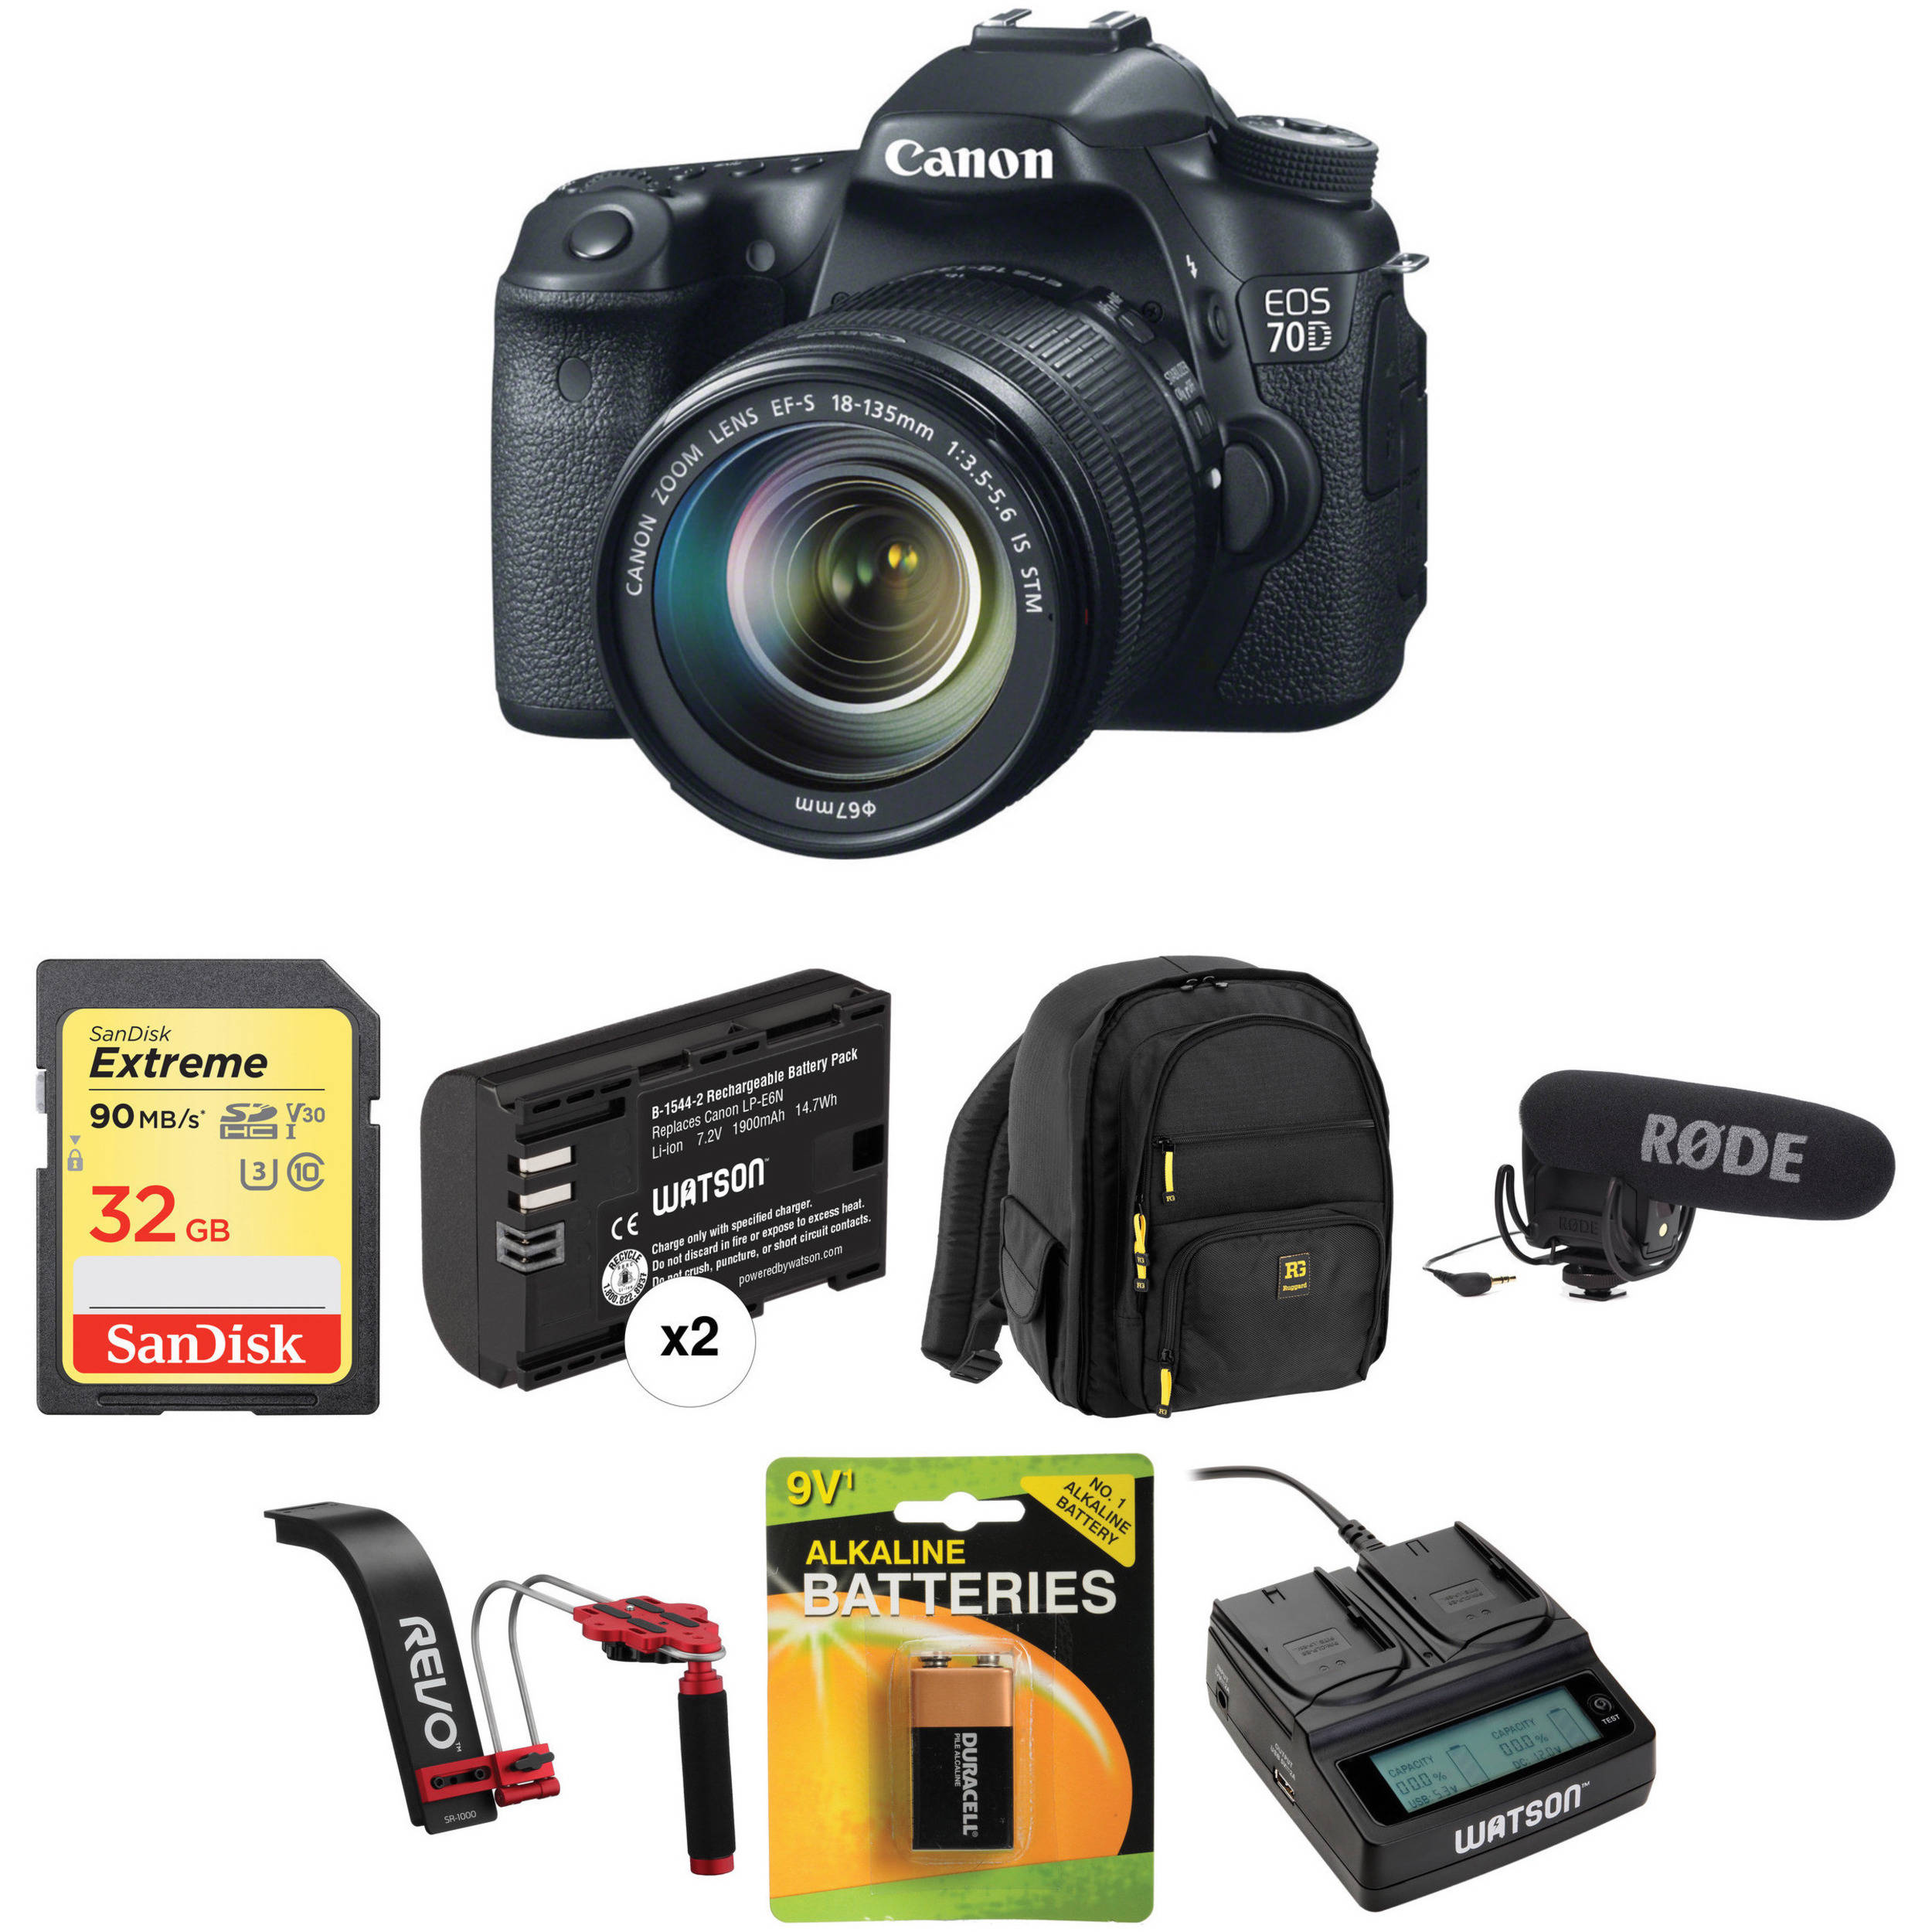 Canon EOS 70D DSLR Camera with 18-135mm Lens Video Kit B&H Photo